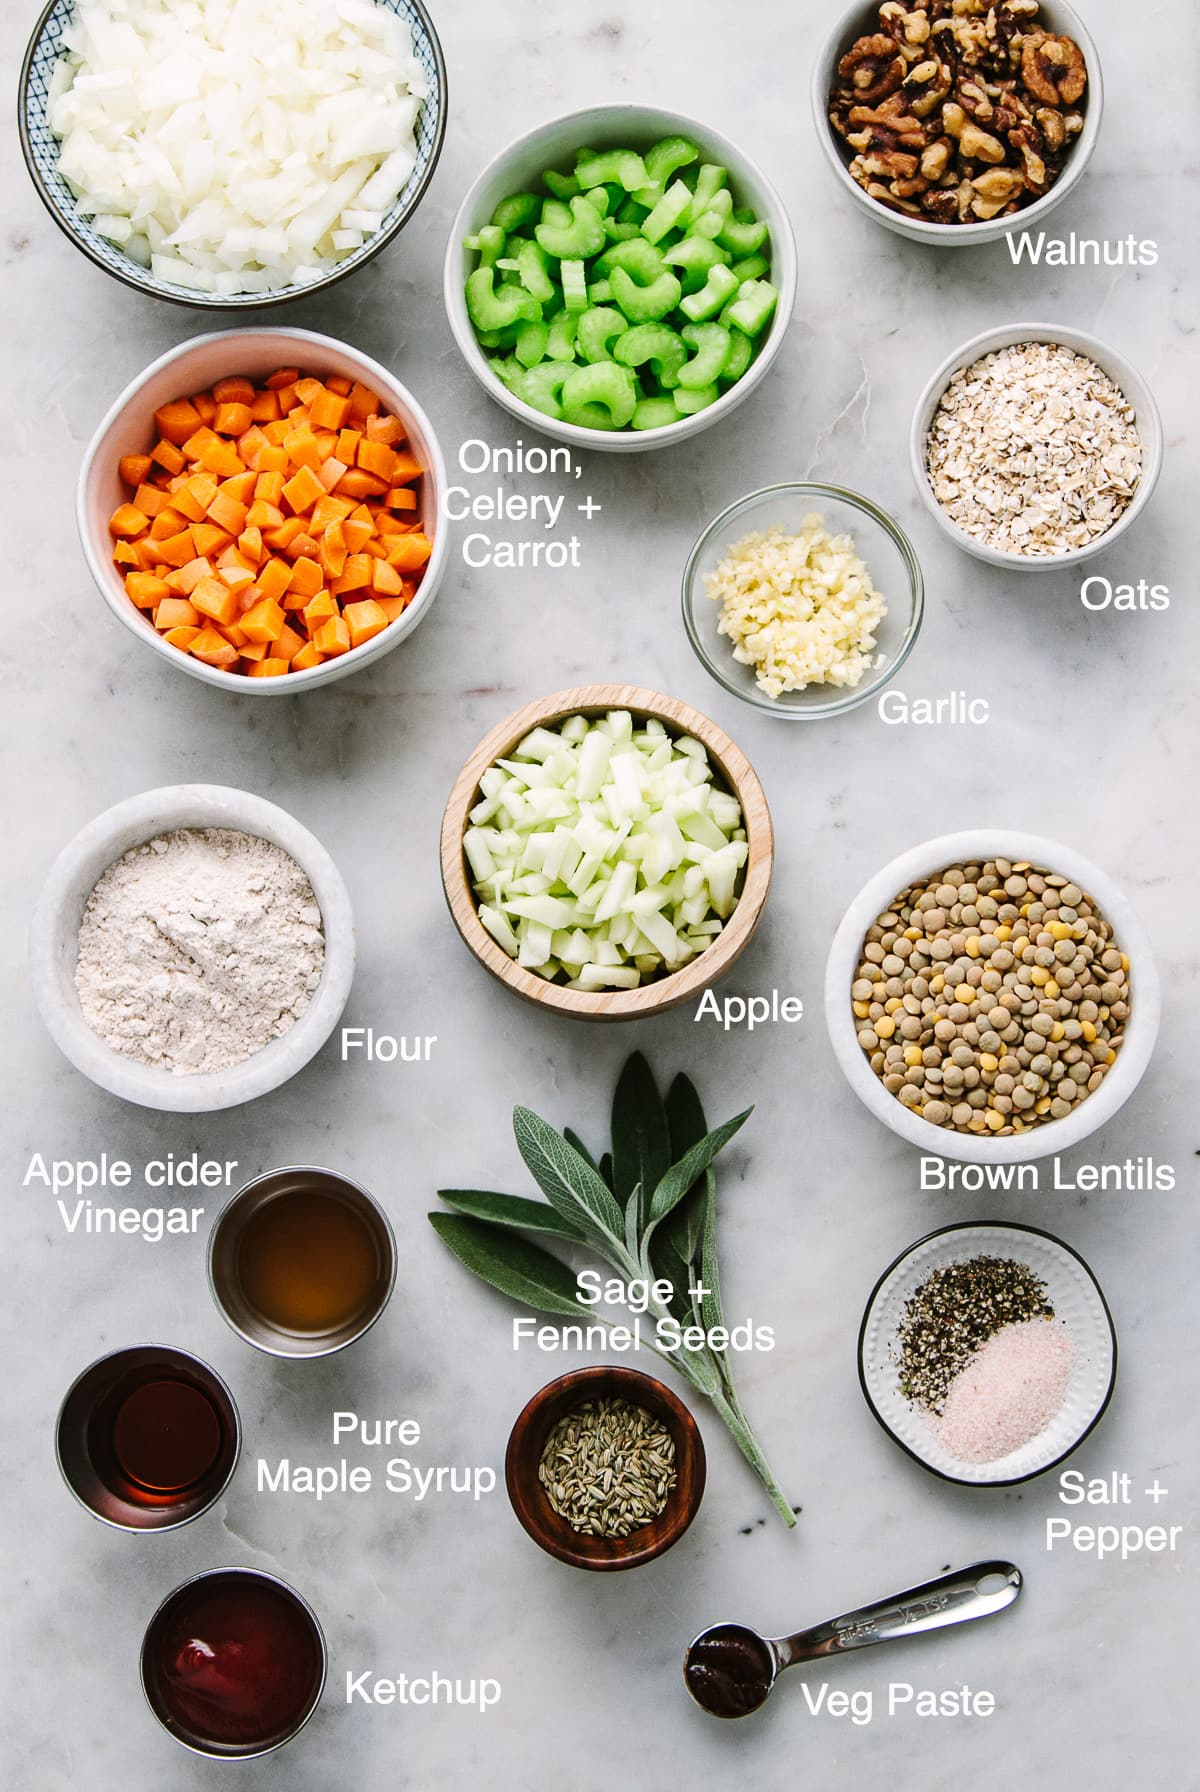 top down view of the ingredients used to make lentil loaf recipe with apple, fennel and sage.